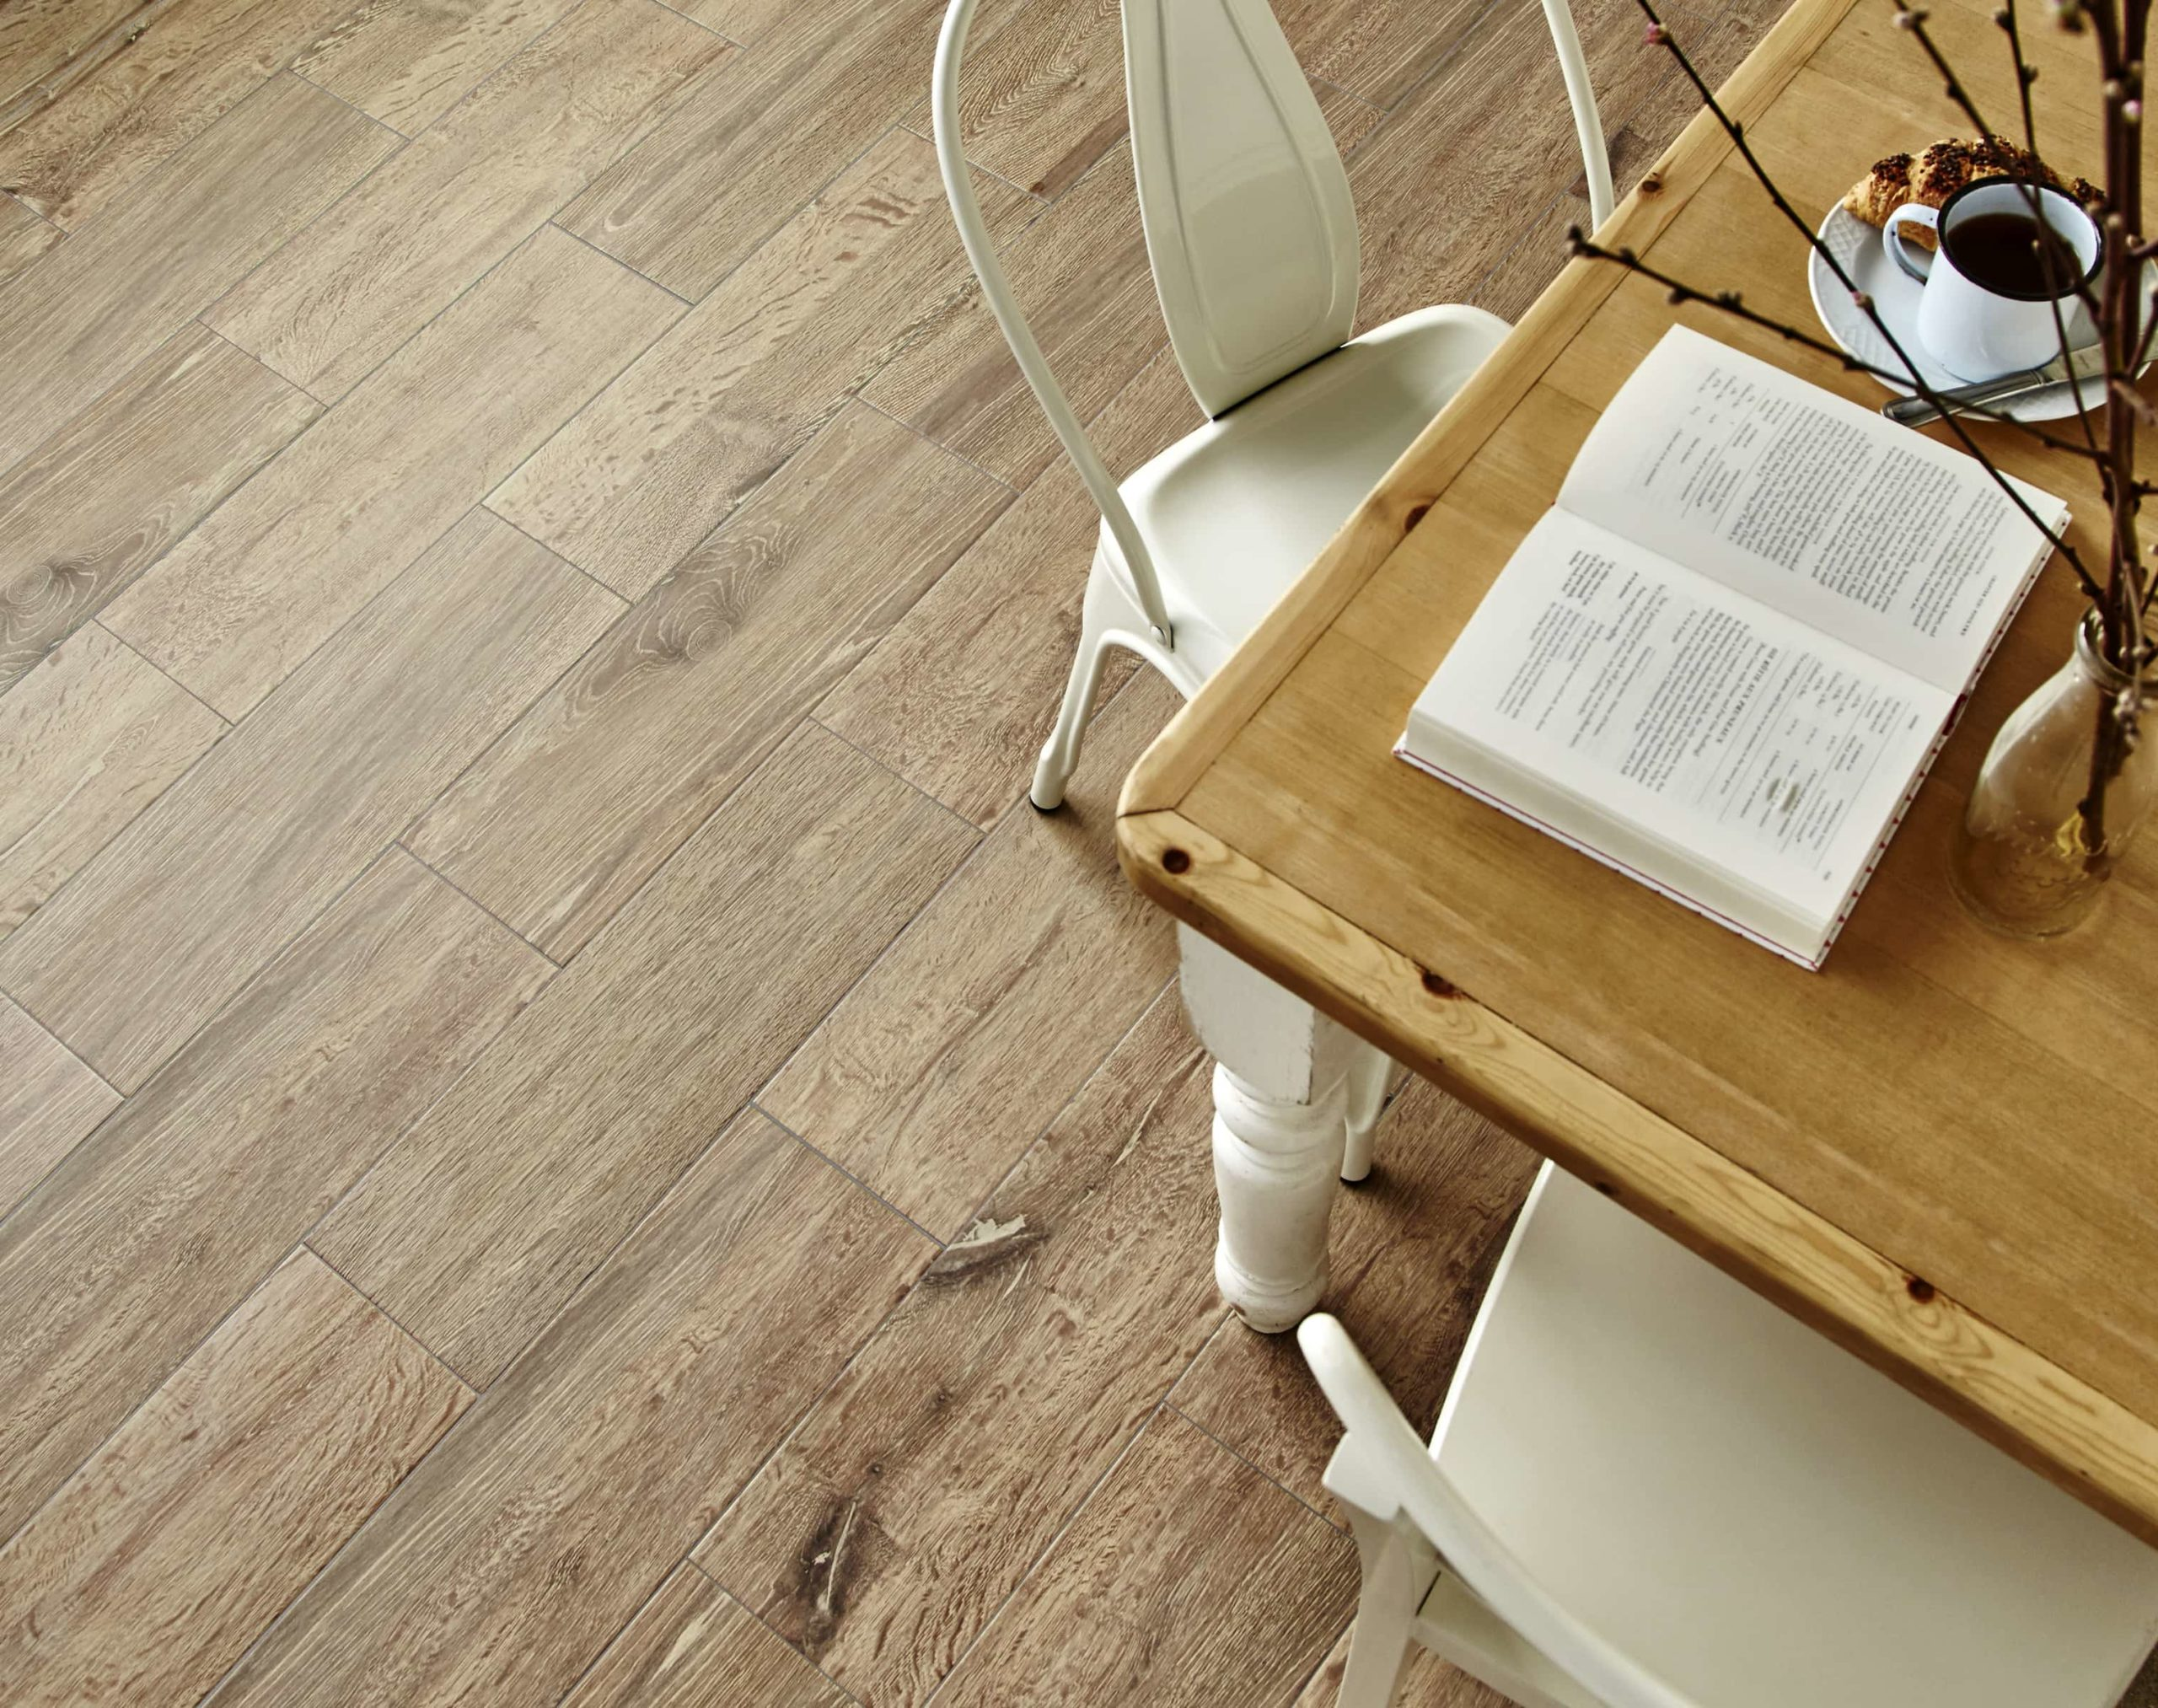 Laminate Flooring With Underfloor, Can You Put Underfloor Heating Under Laminate Flooring